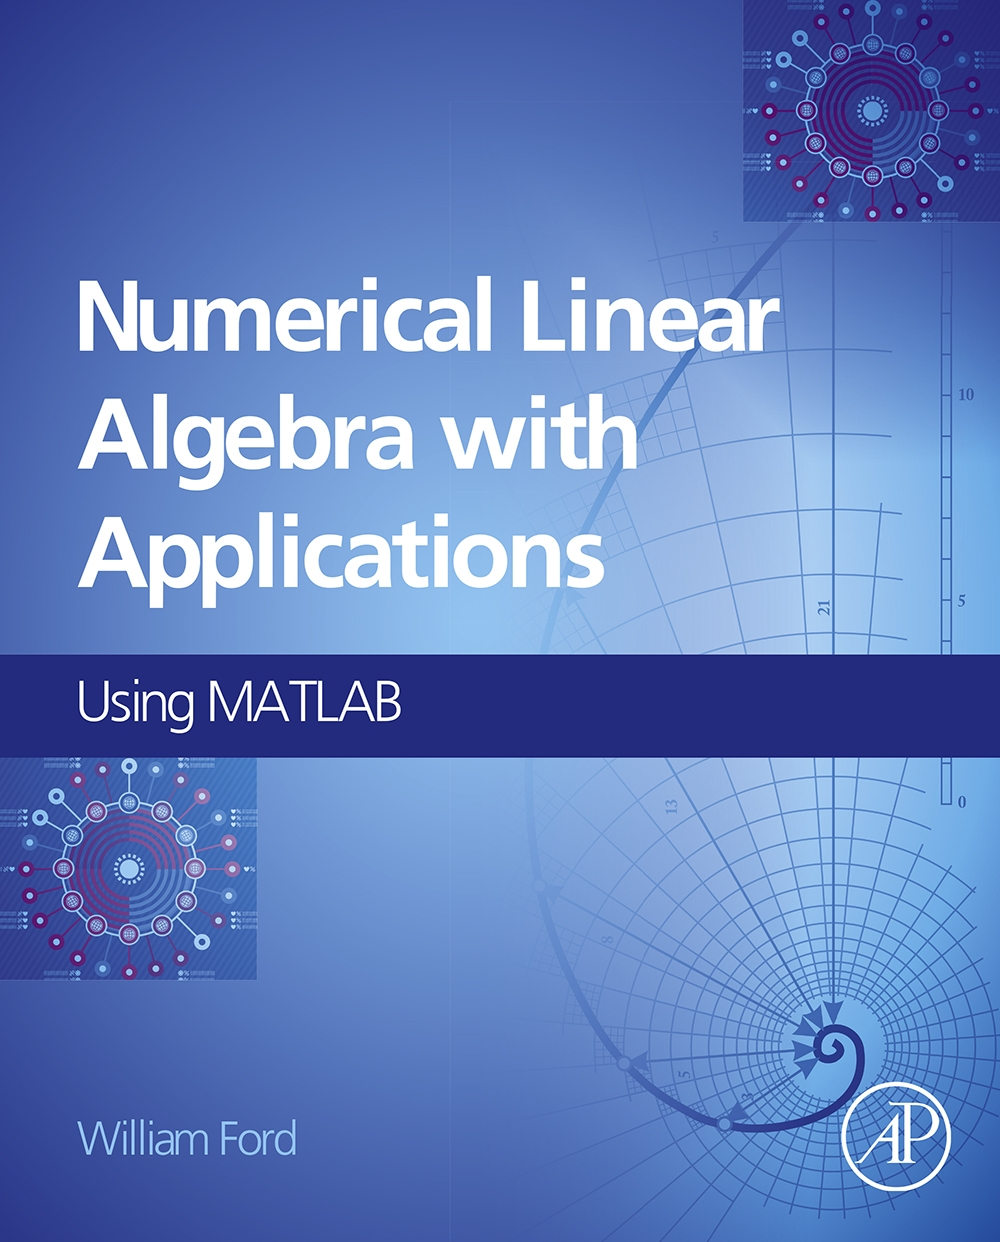 Numerical Linear Algebra with Applications Using MATLAB